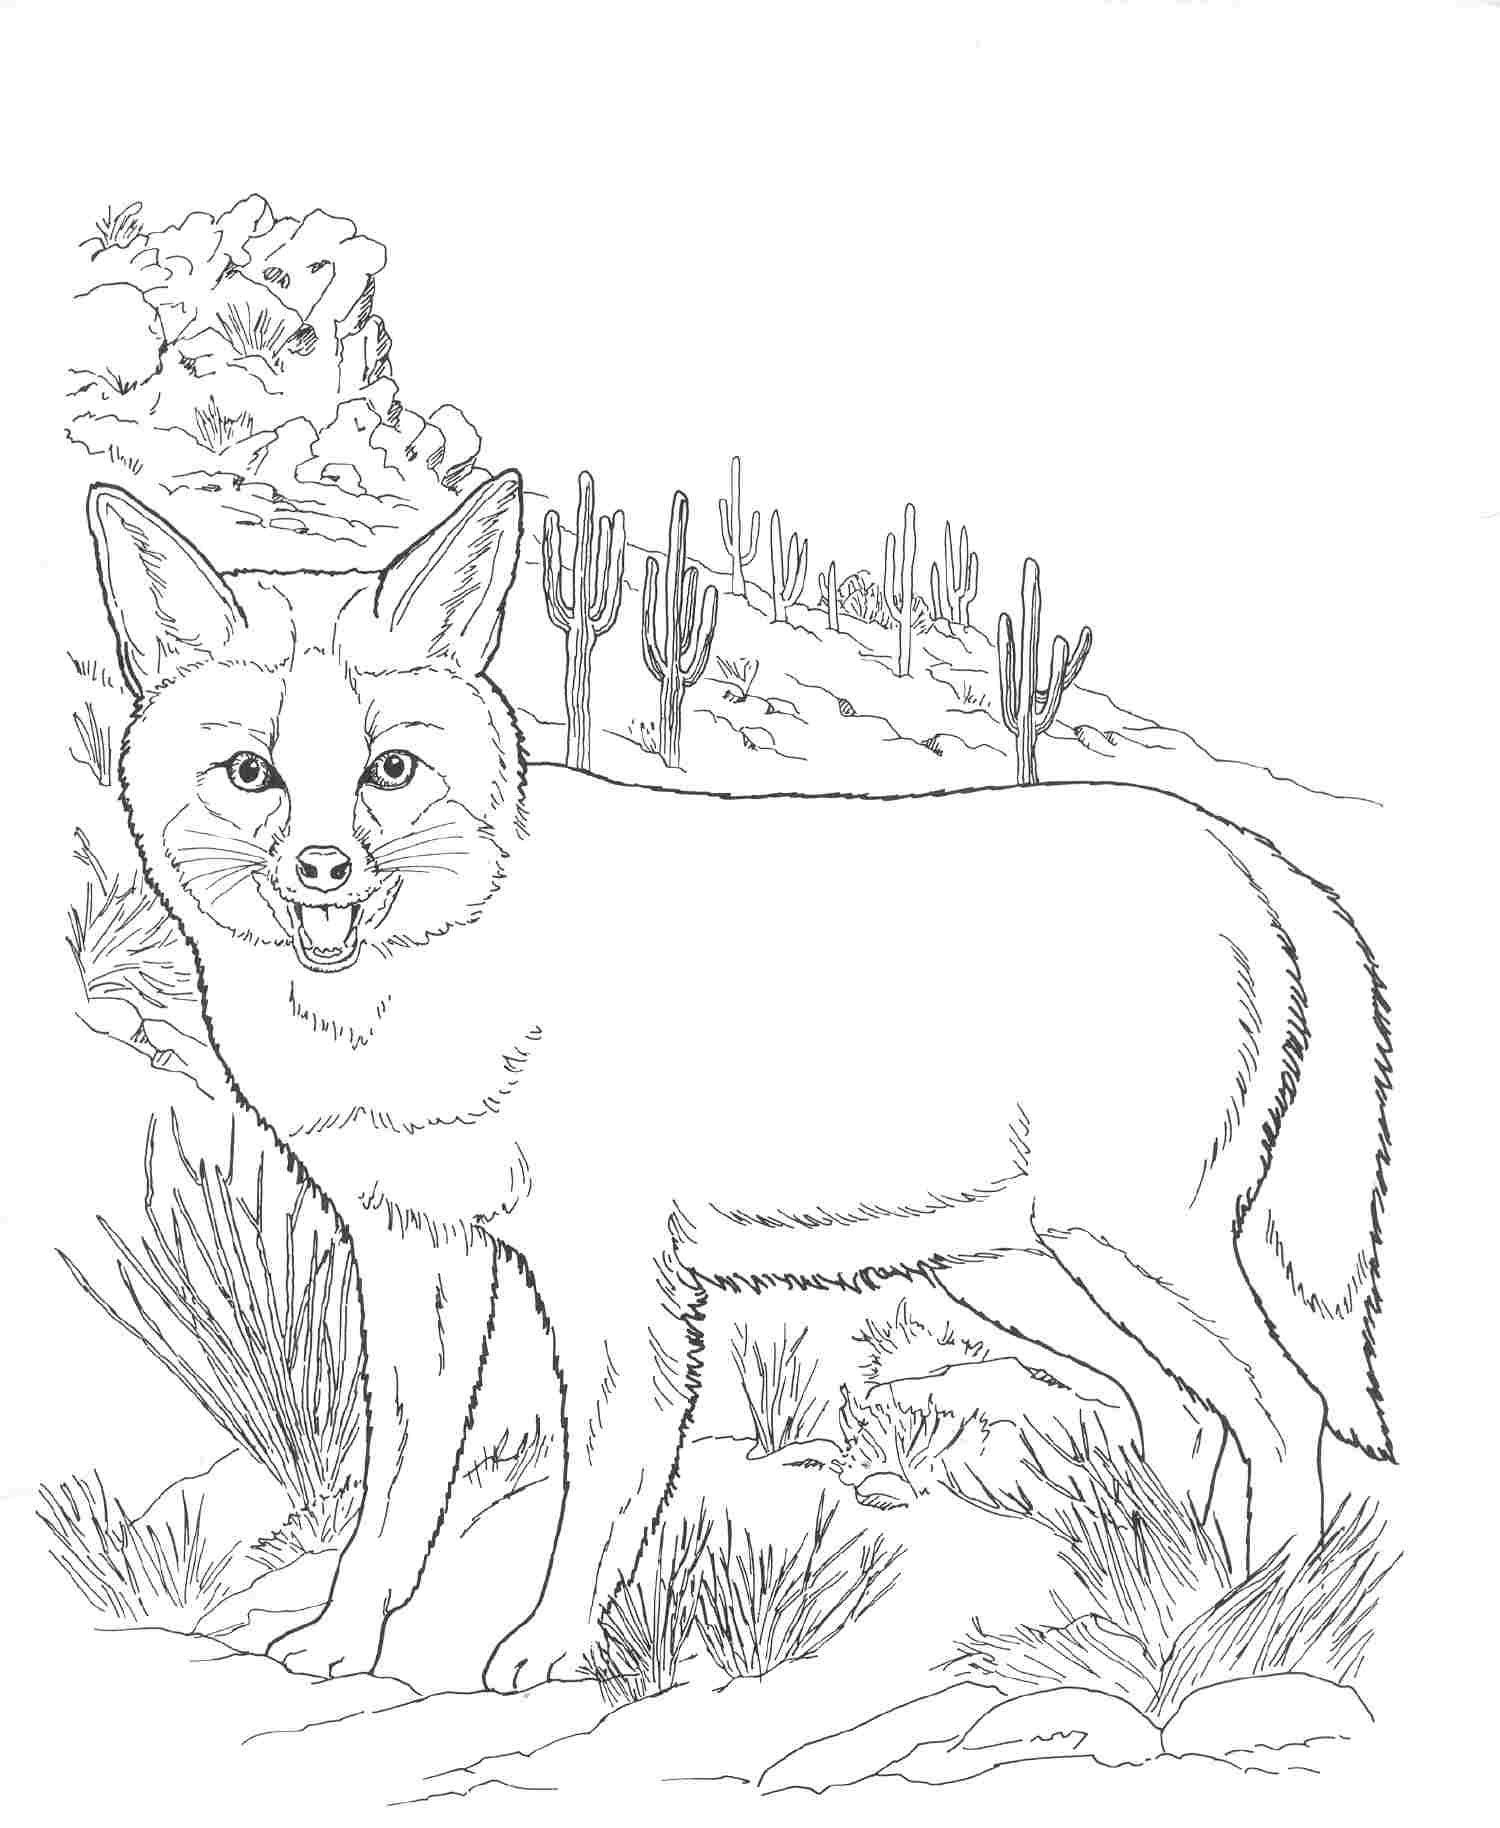 30 Coloring Pages Desert | Coloring Pages | Pinterest | Animal - Free Printable Desert Animals